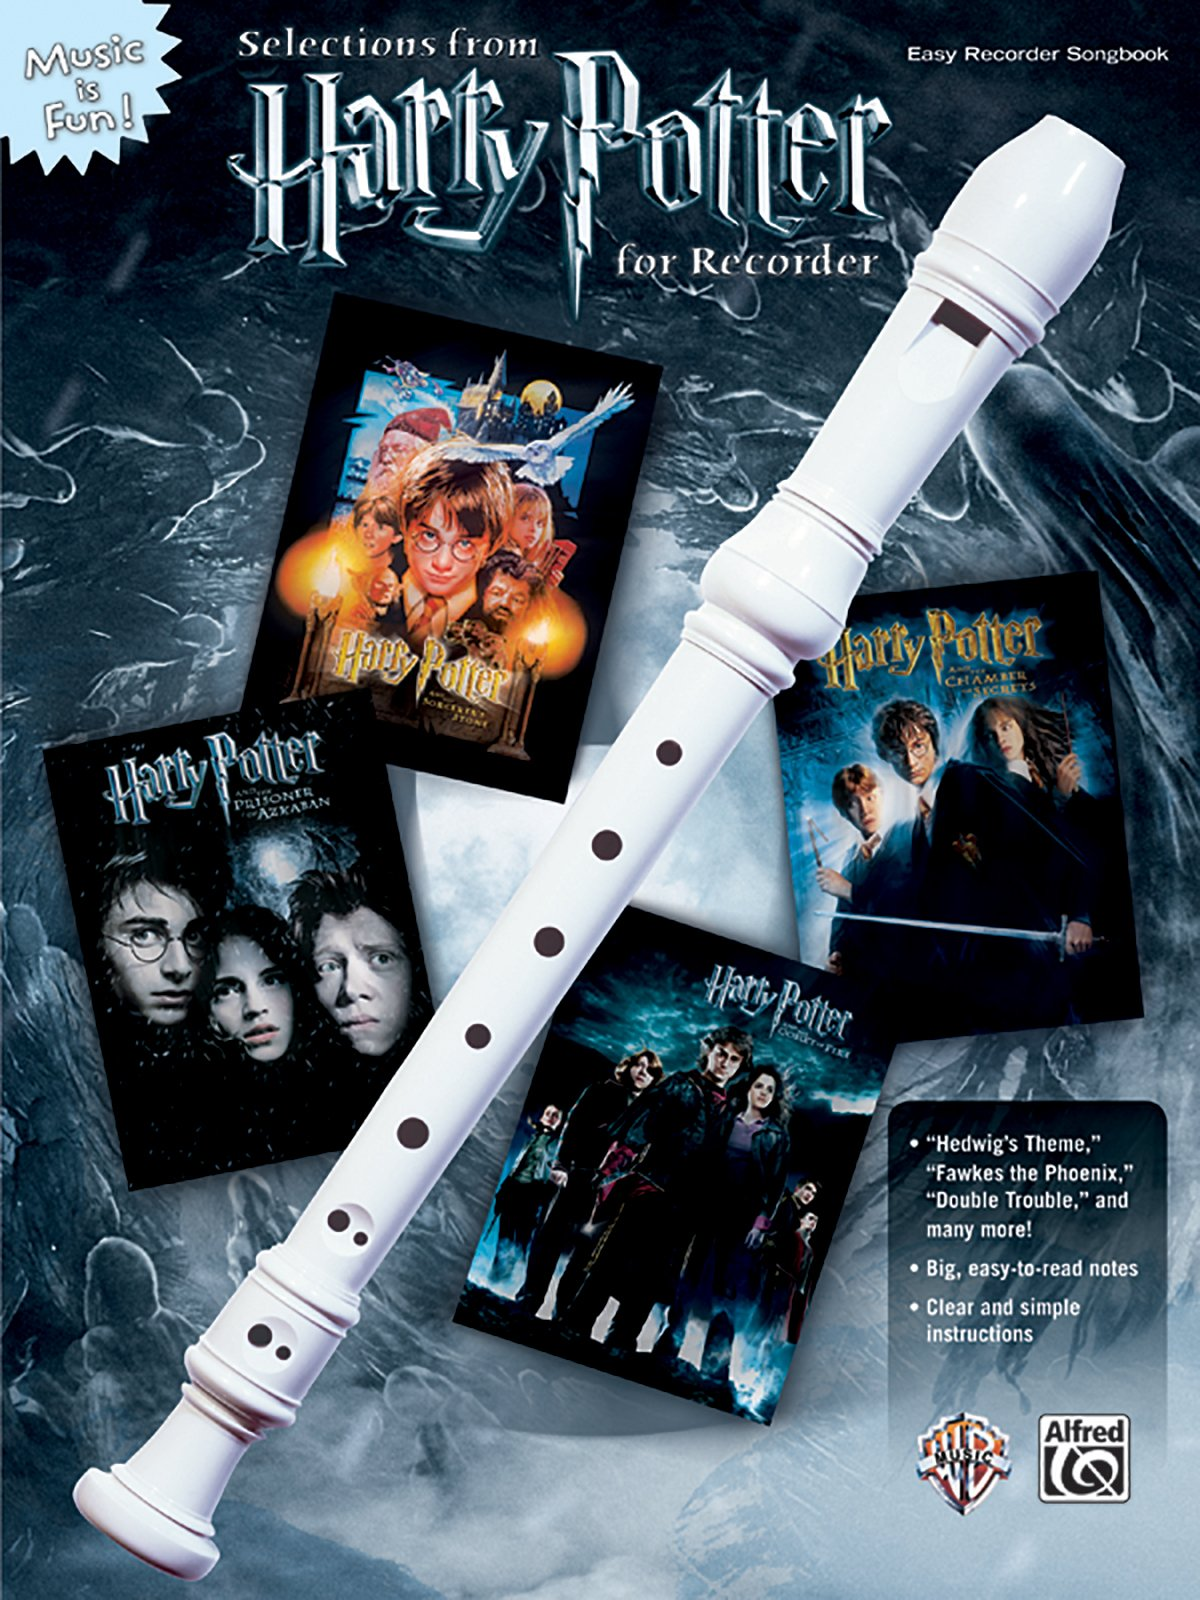 Selections from Harry Potter for Recorder (Book & Recorder) (Music Is Fun)